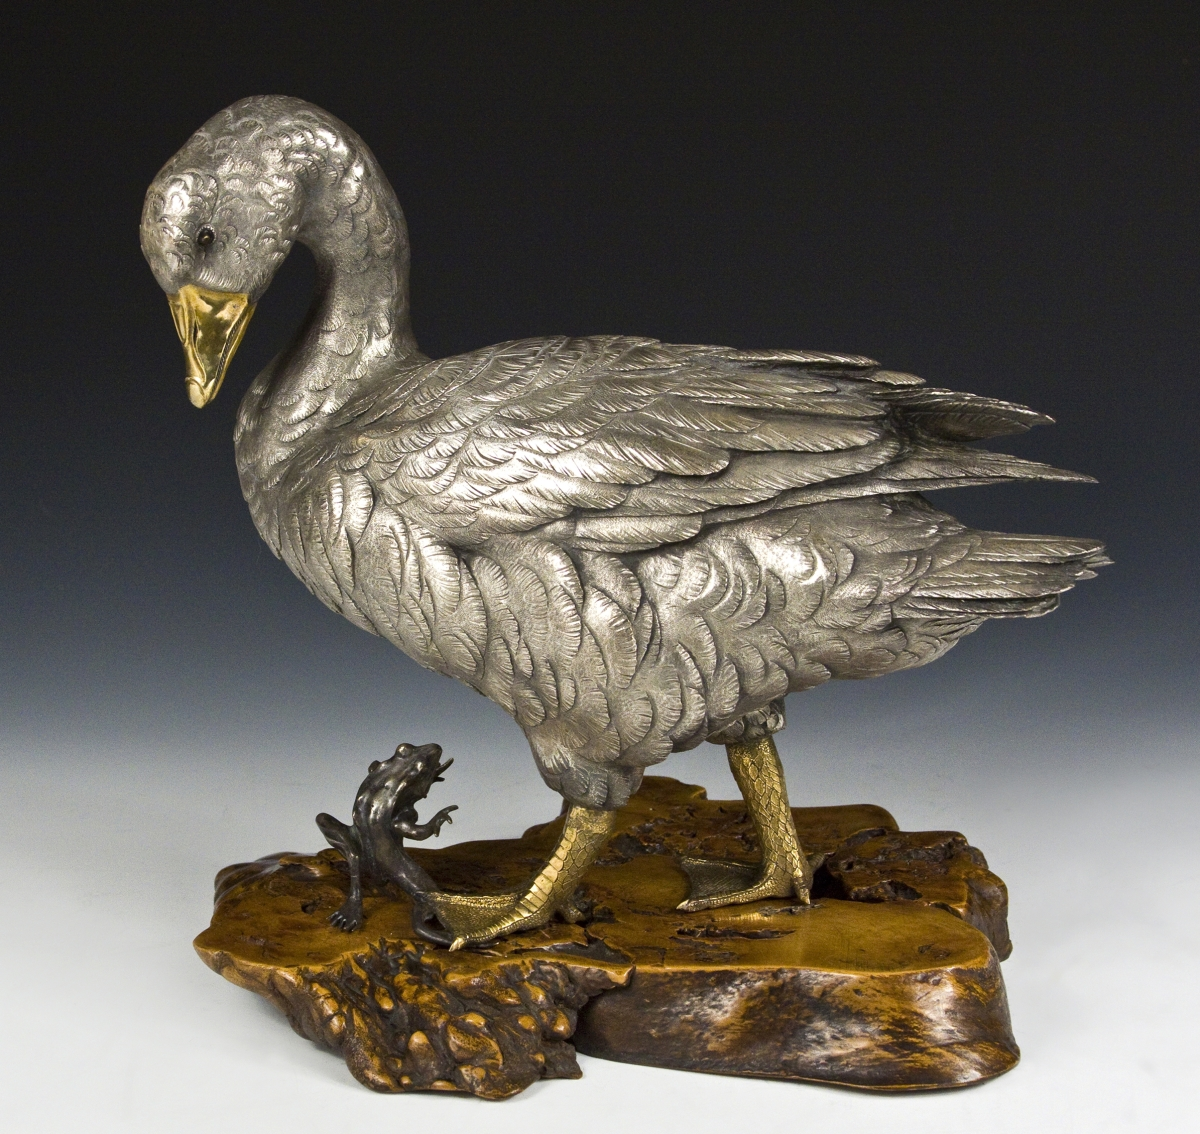 A silvered-bronze okimono of a goose, a small frog at its feet, gold, shakudo and shibuichi detailing, Seiji signature in oval cartouche under tail feathers. Provenance: Mr and Mrs Vincent Sardi, Vermont.